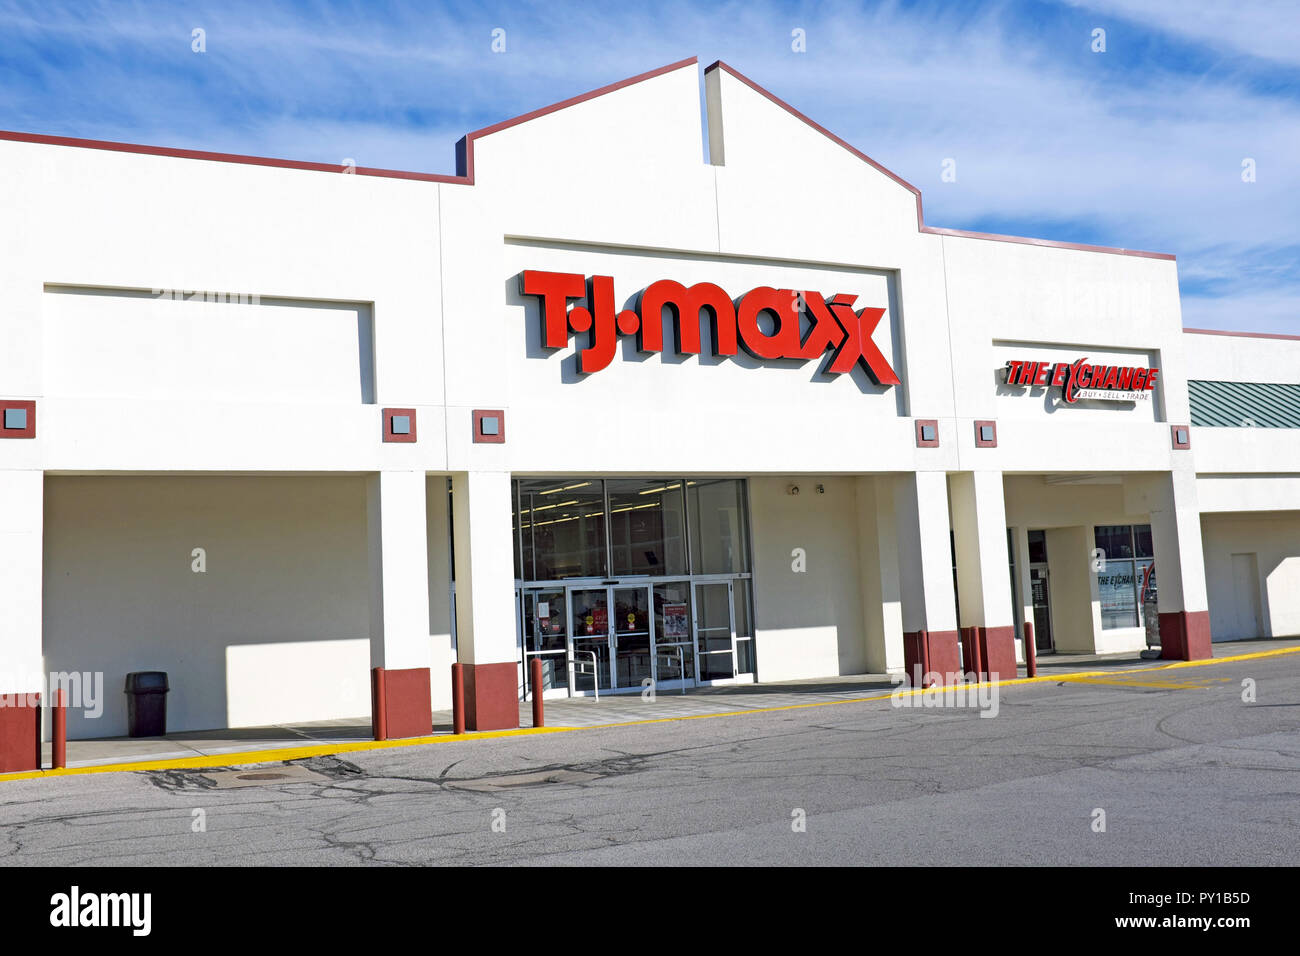 T J  Maxx department store in Willoughby, Ohio, USA Stock